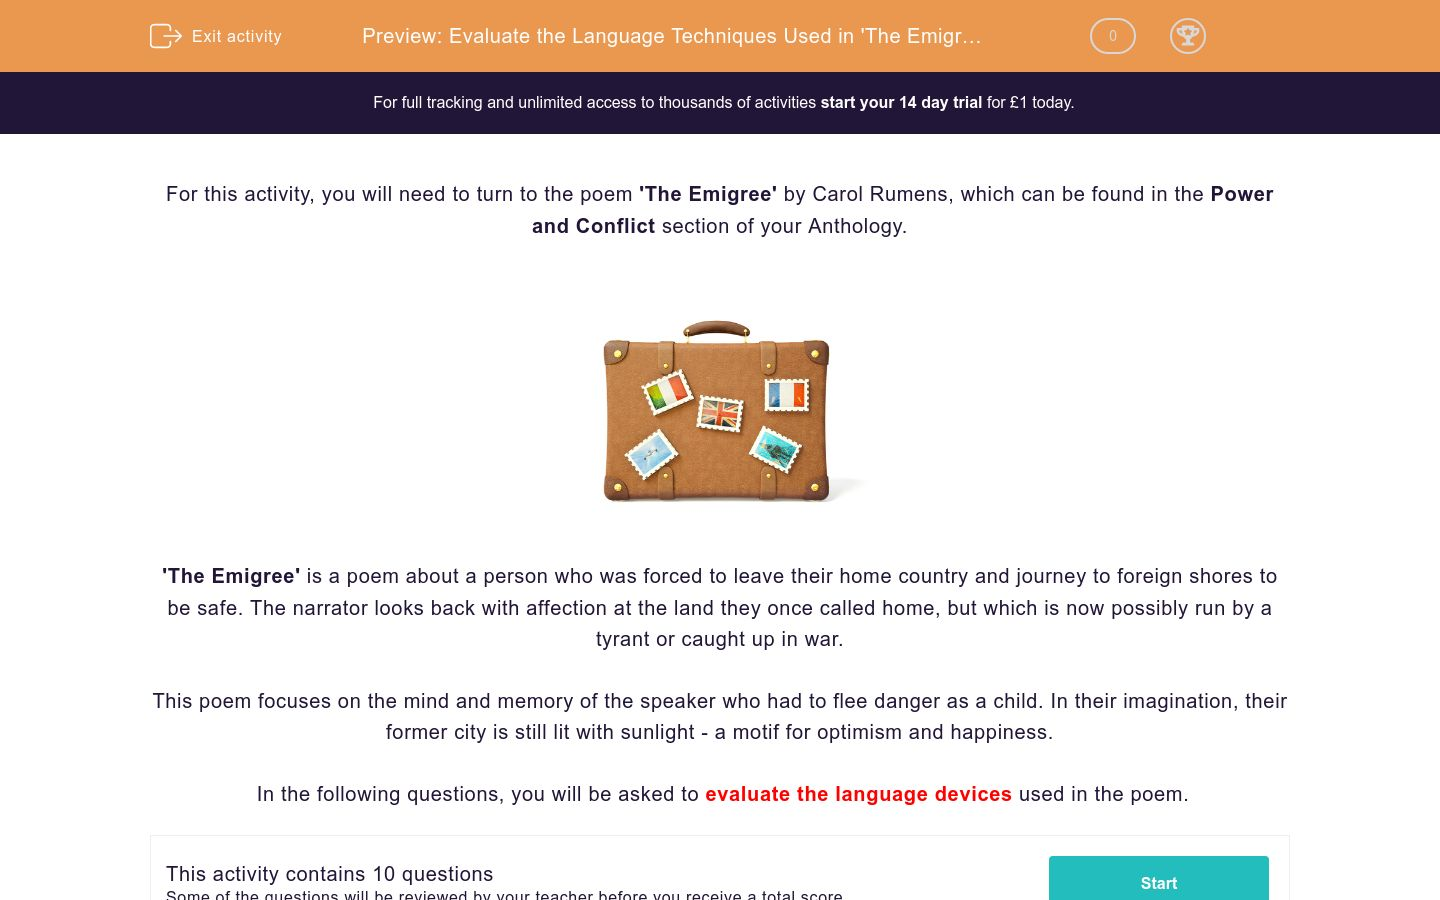 'Evaluate the Language Techniques Used in 'The Emigree' by Carol Rumens' worksheet